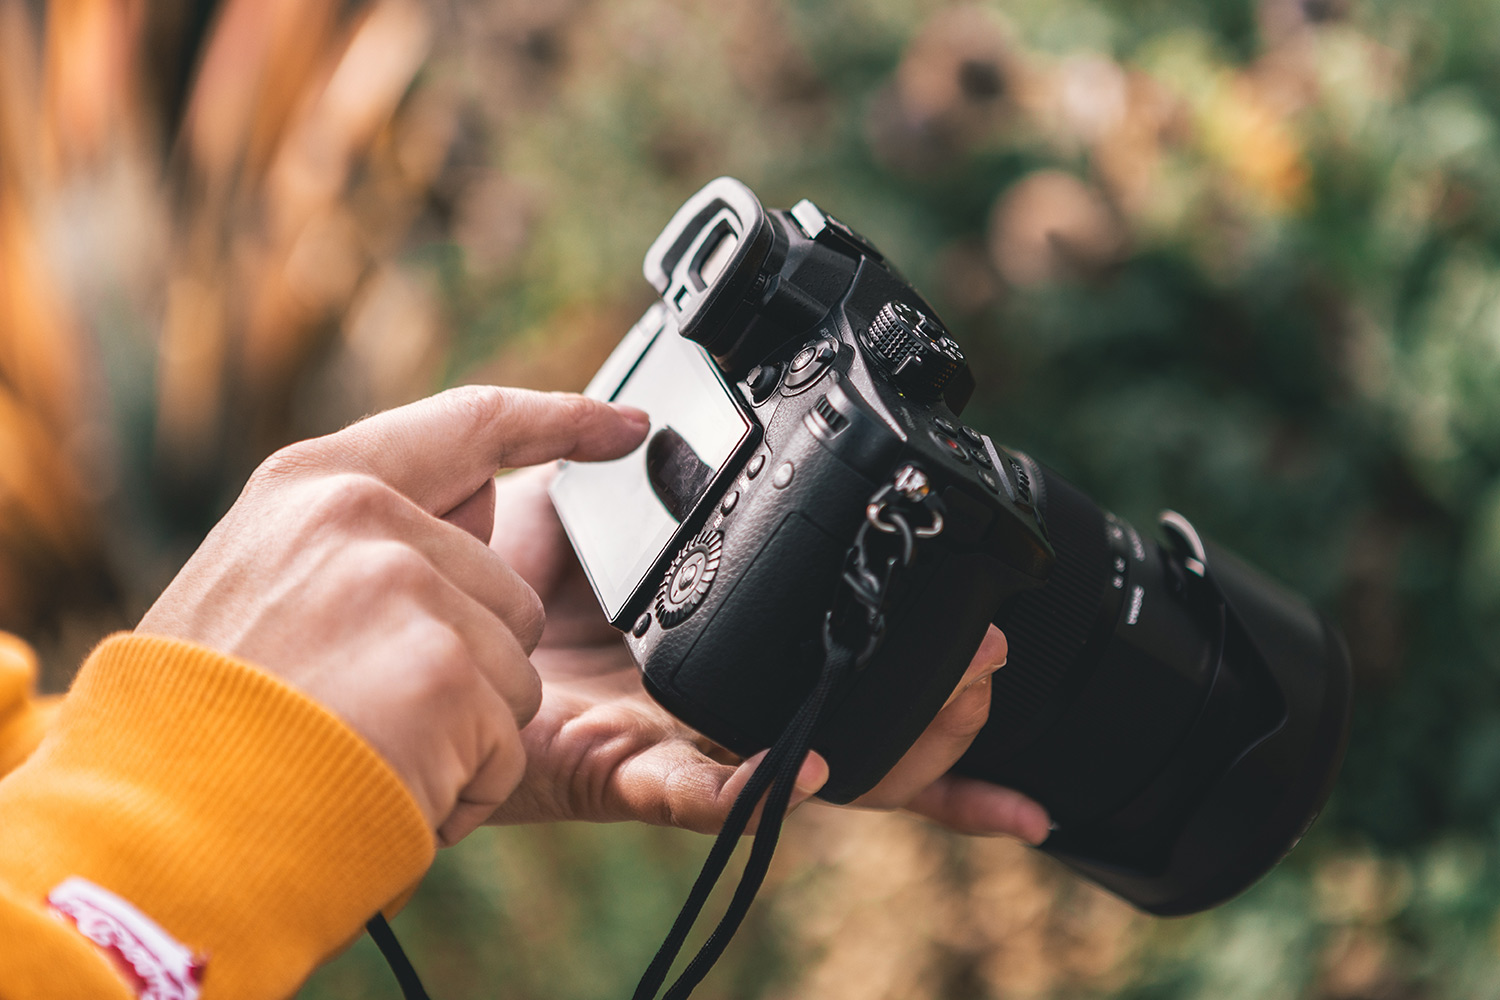 I m A Photographer   Photography Jobs UK   Hourly Rate     snapgenius photography jobs uk london edinburgh glasgow liverpool manchester